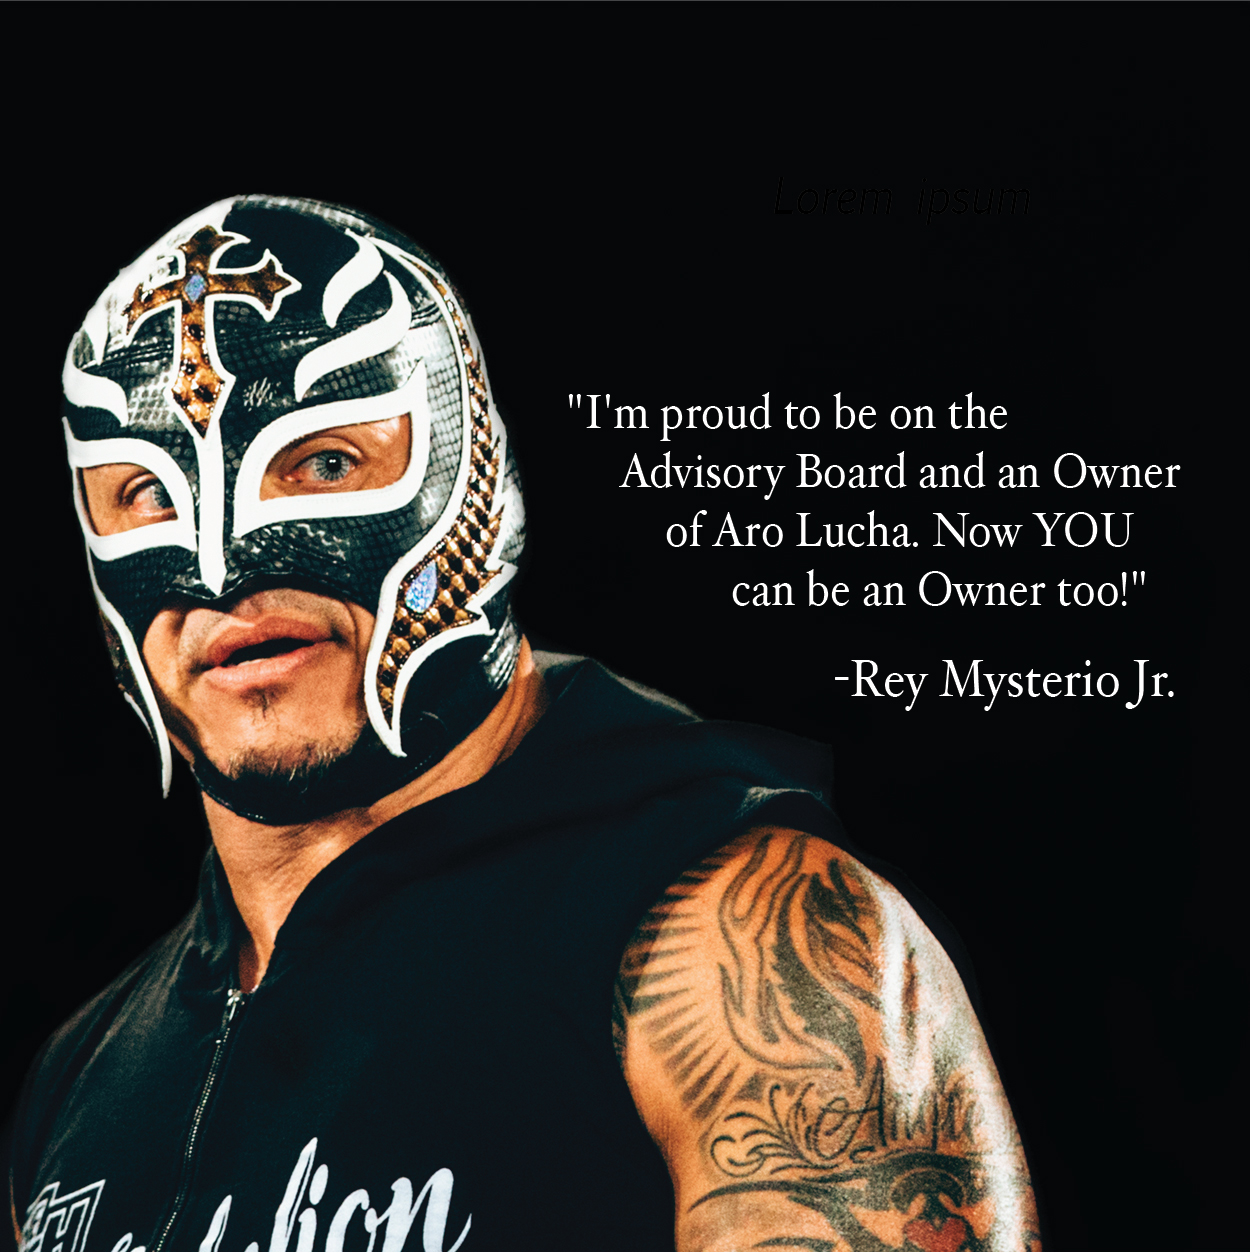 Lucha Libre Rey Misterio Rey Mysterio Owner And Star Of Season 1 Of Aro Lucha